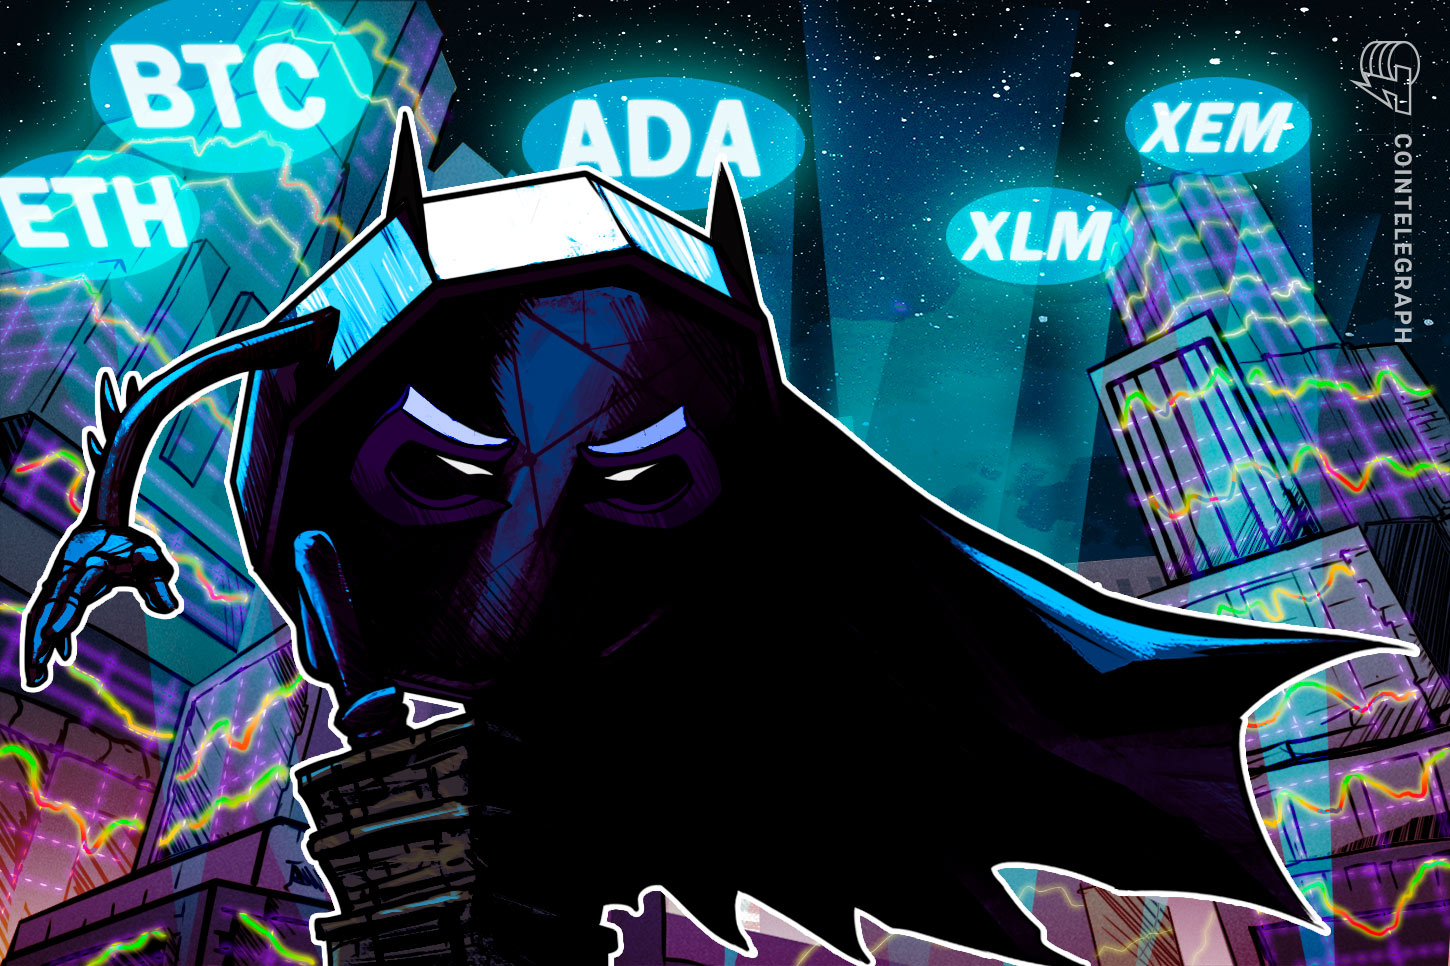 Top 5 cryptocurrencies to watch this week: BTC, ETH, ADA, XLM, XEM